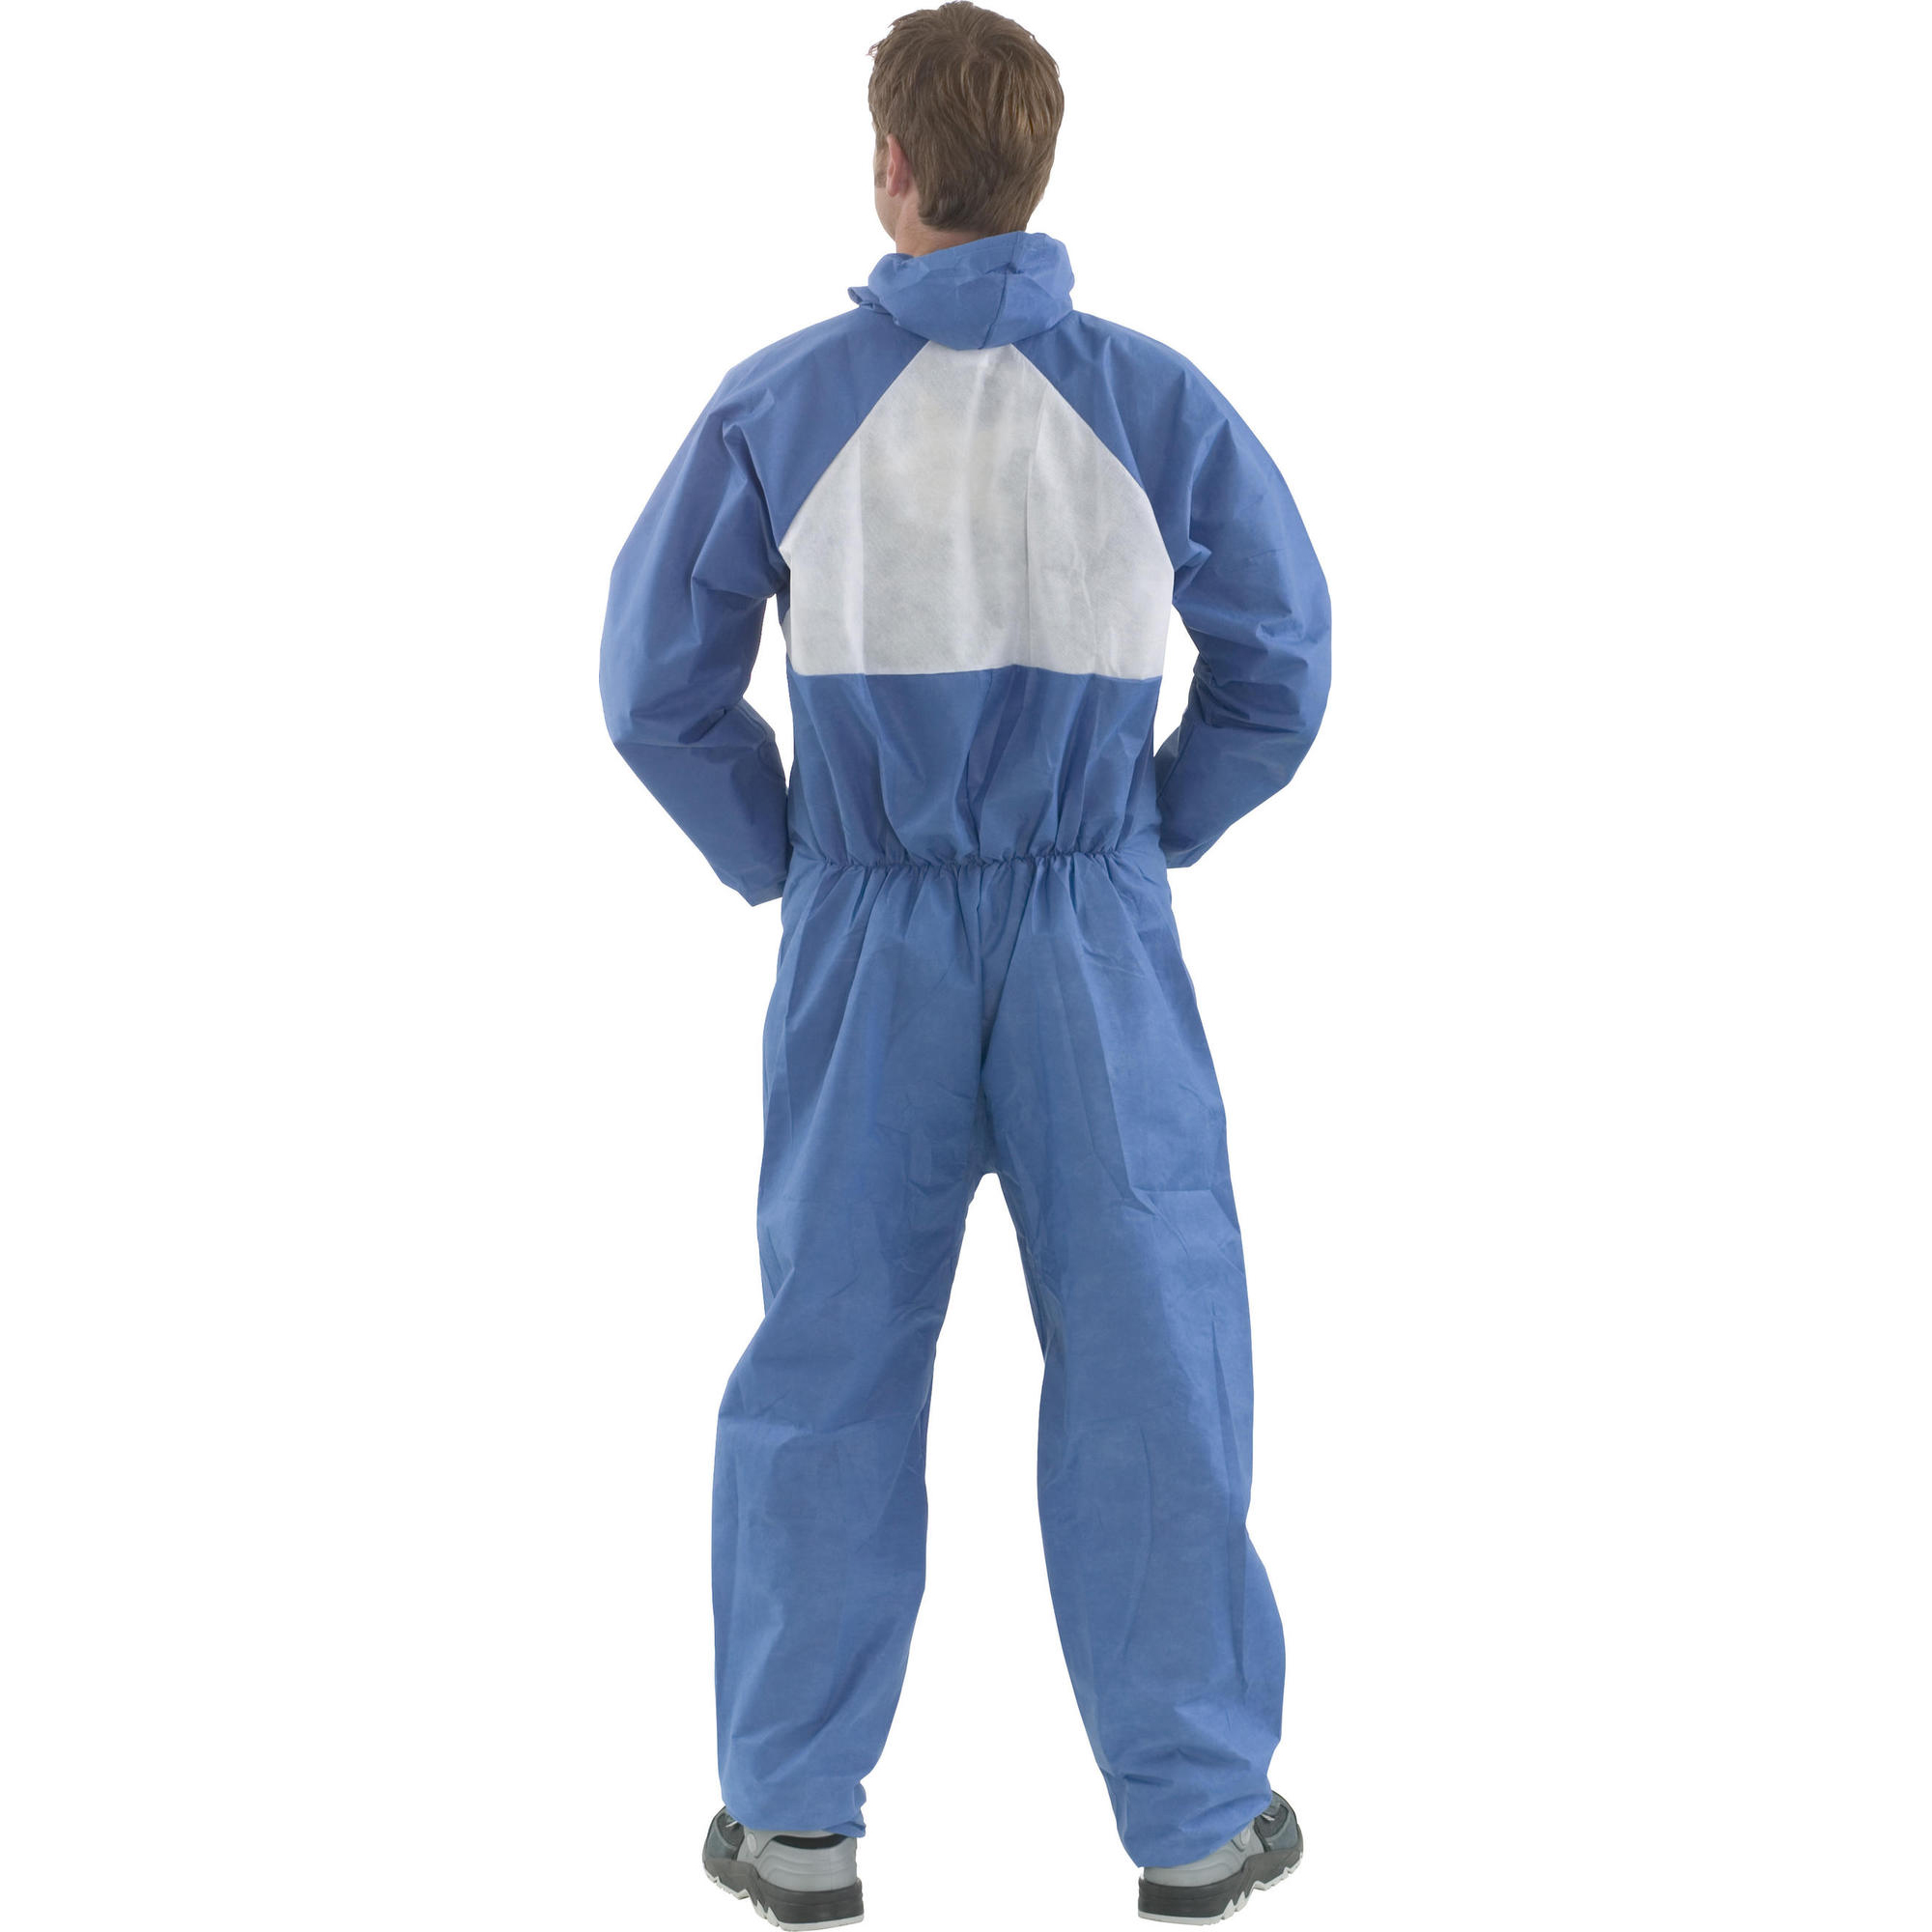 3M 4530 Fire Resistant Coveralls M Blue/White Ref 4530M [Pack 20] *Up to 3 Day Leadtime*